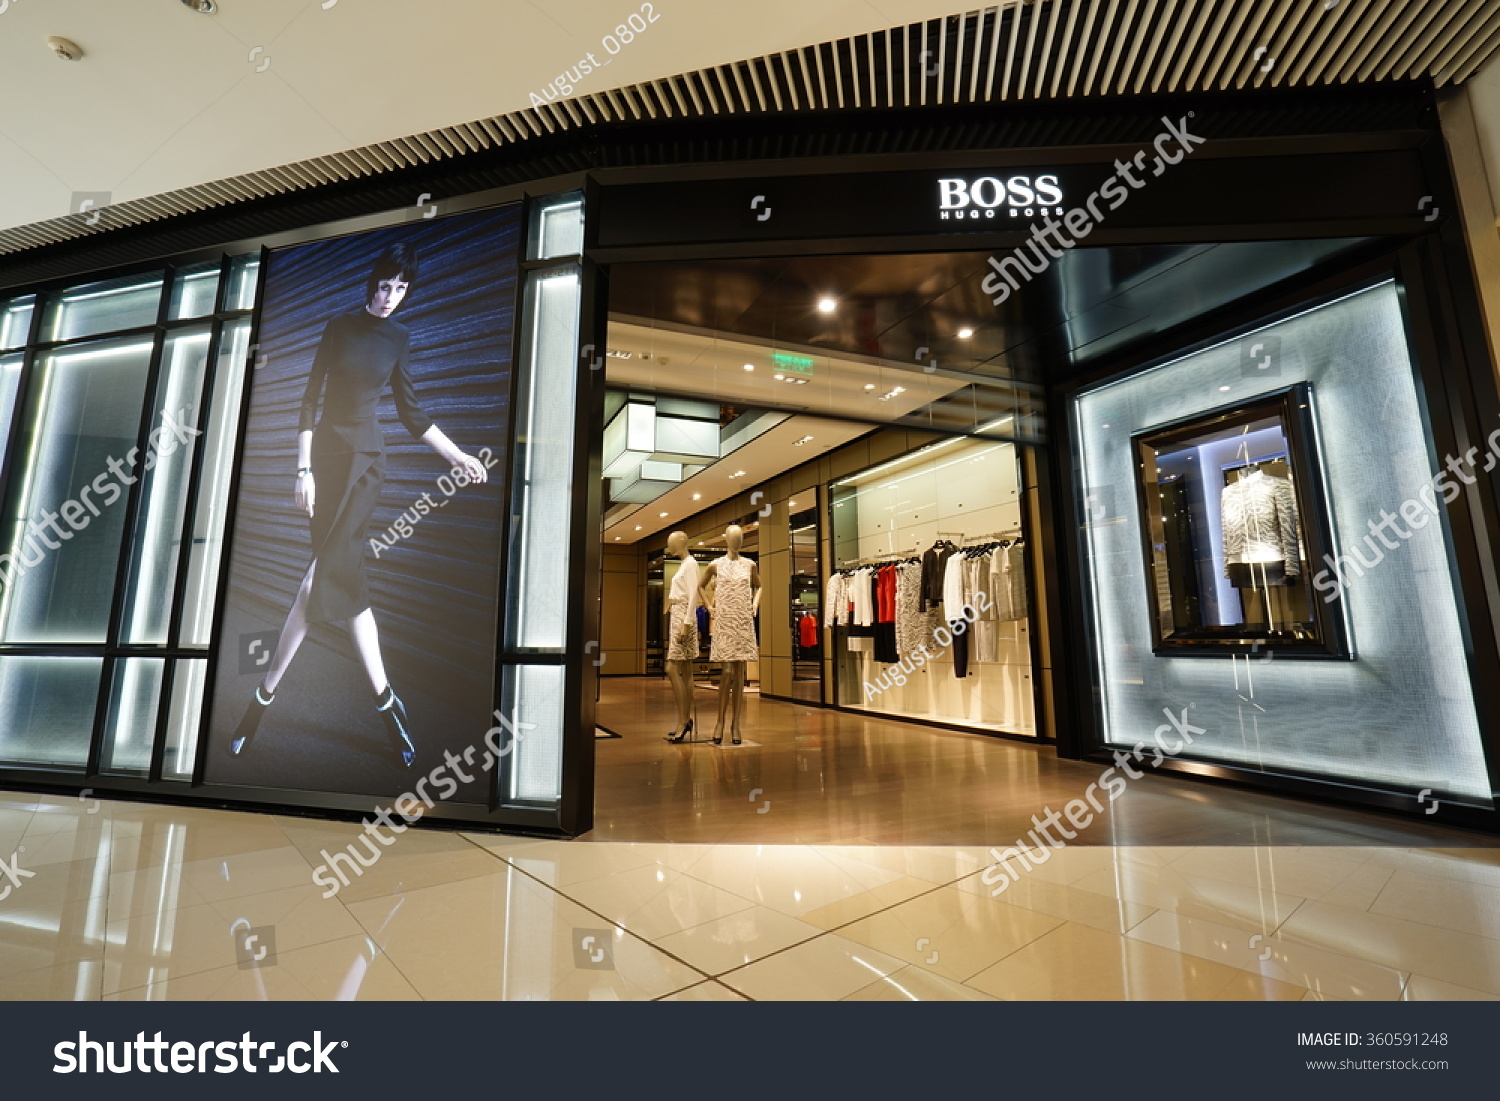 shanghai china jan92016 hugo boss store stock photo 360591248 shutterstock. Black Bedroom Furniture Sets. Home Design Ideas